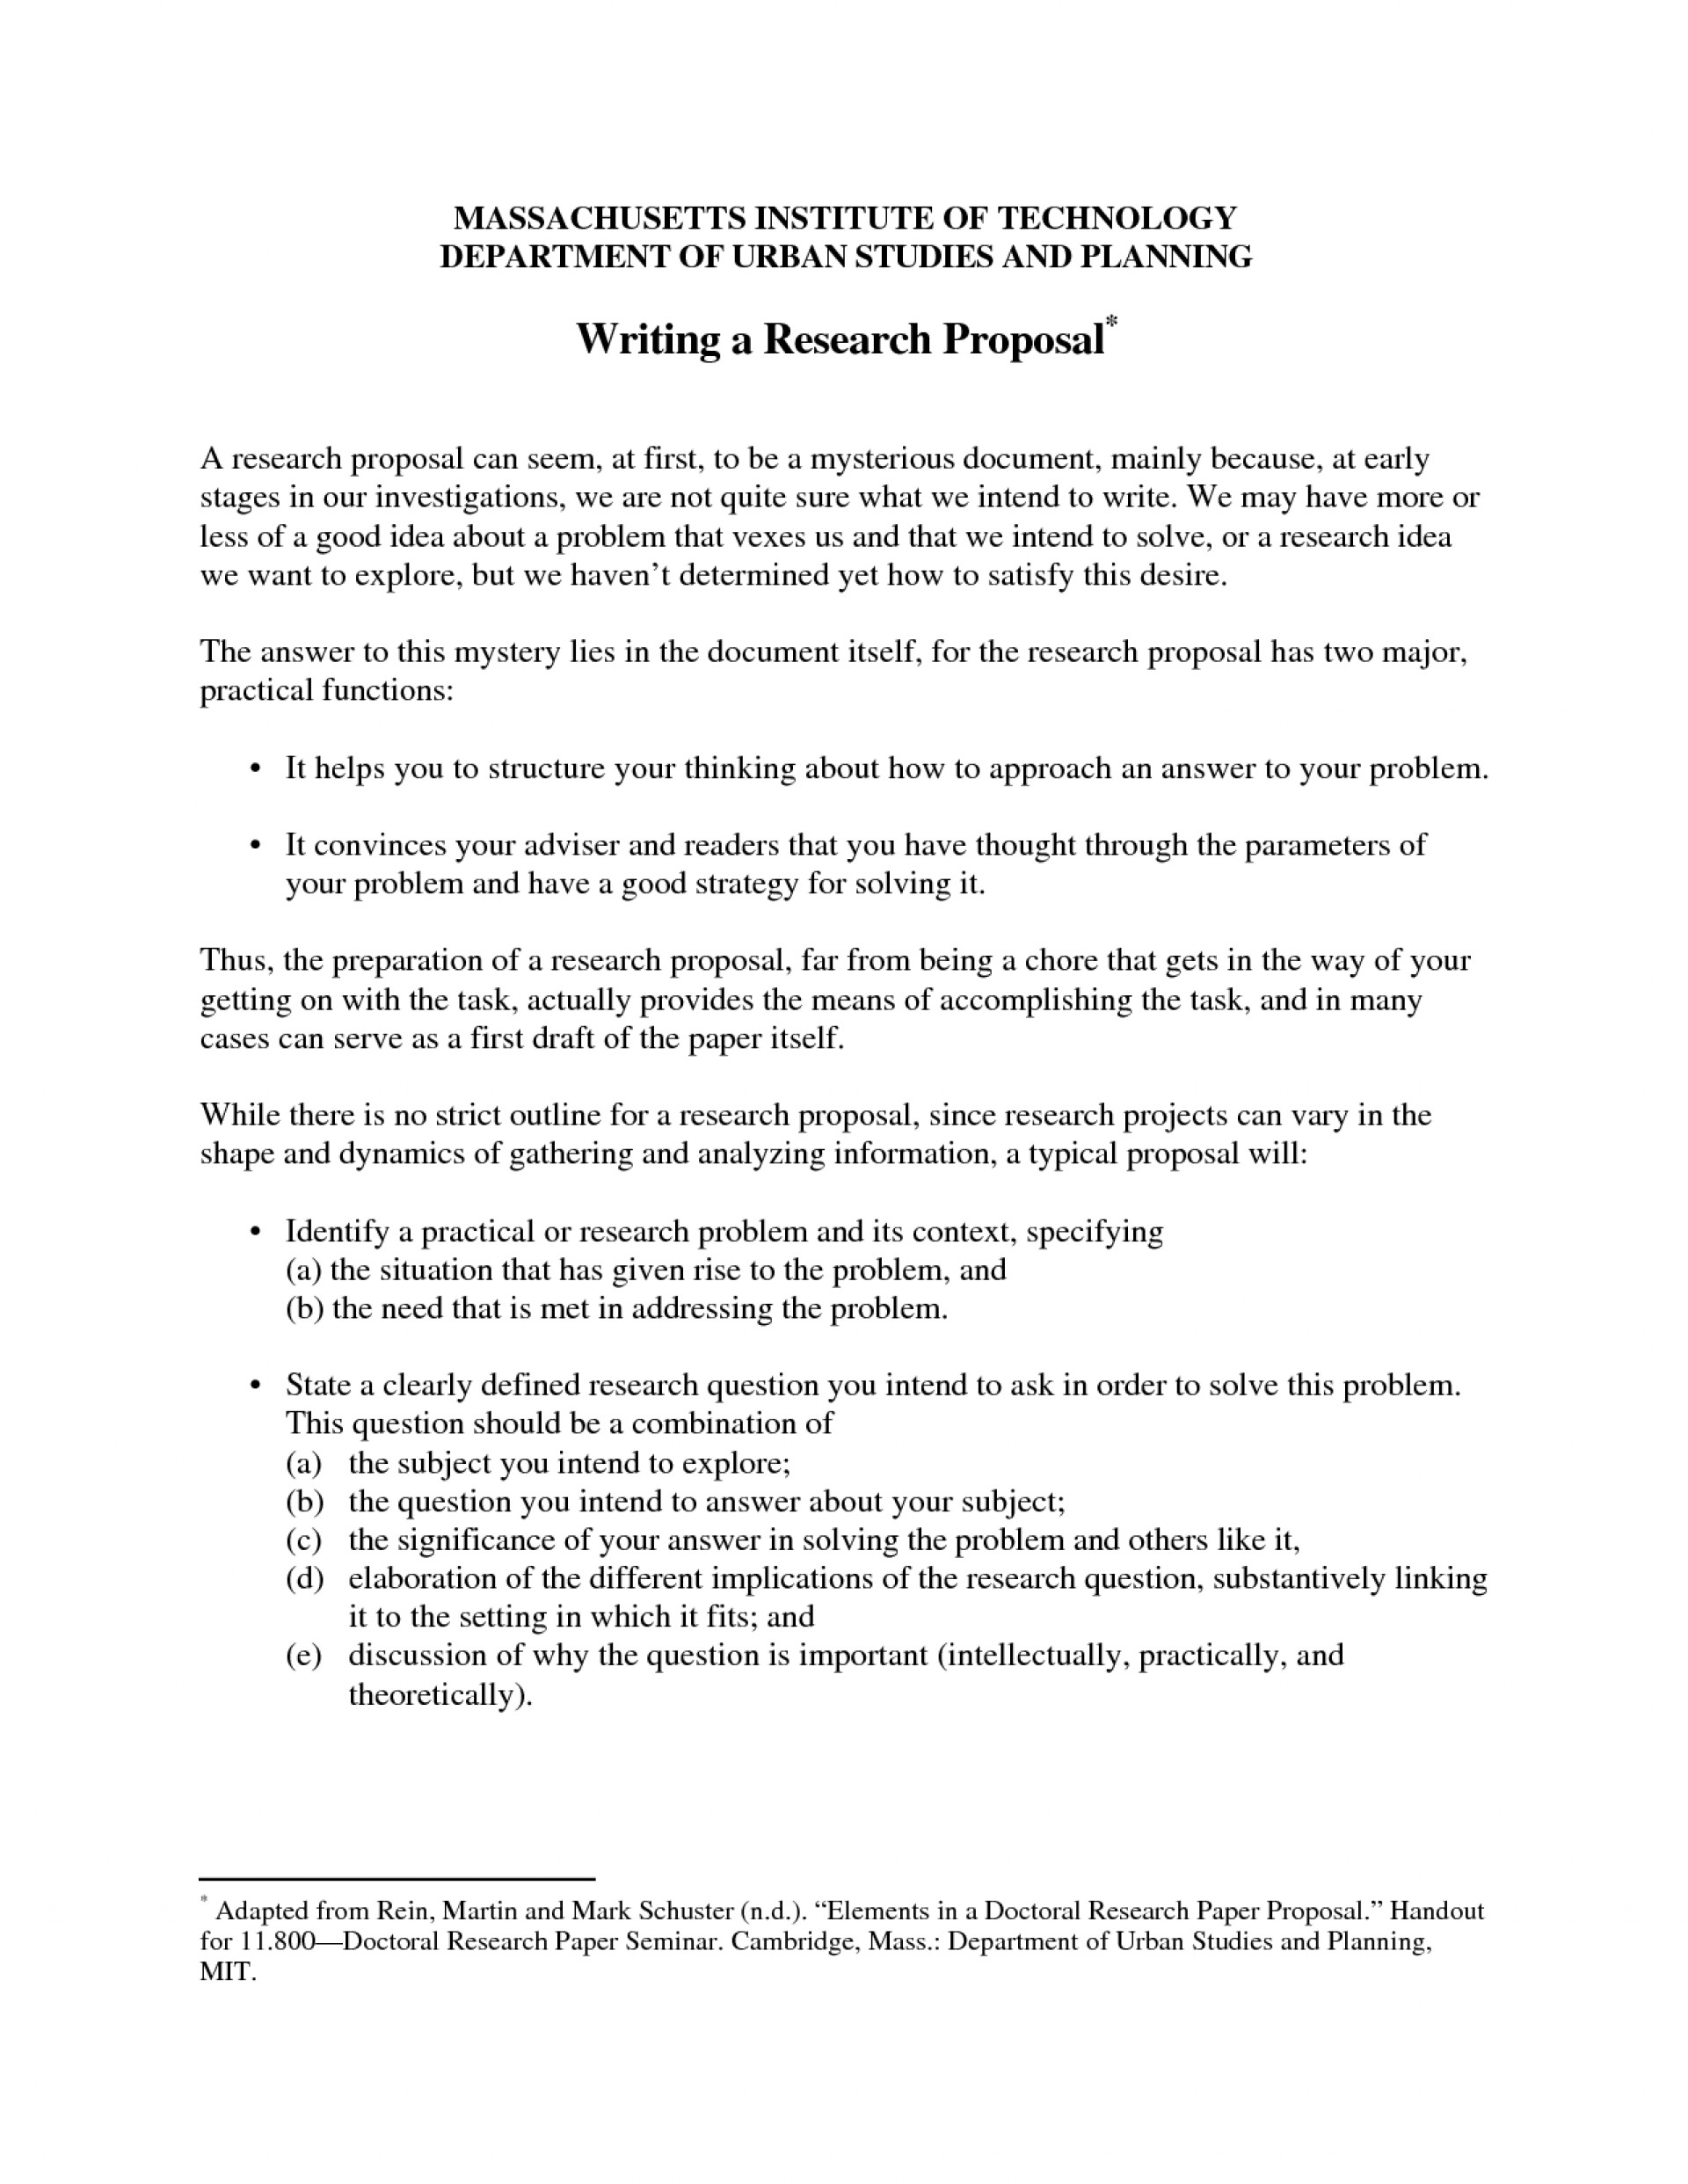 014 Diabetes Research Paper Outline What Does Proposal Look Like 629236 Stirring Mellitus Sample For Type 2 1920